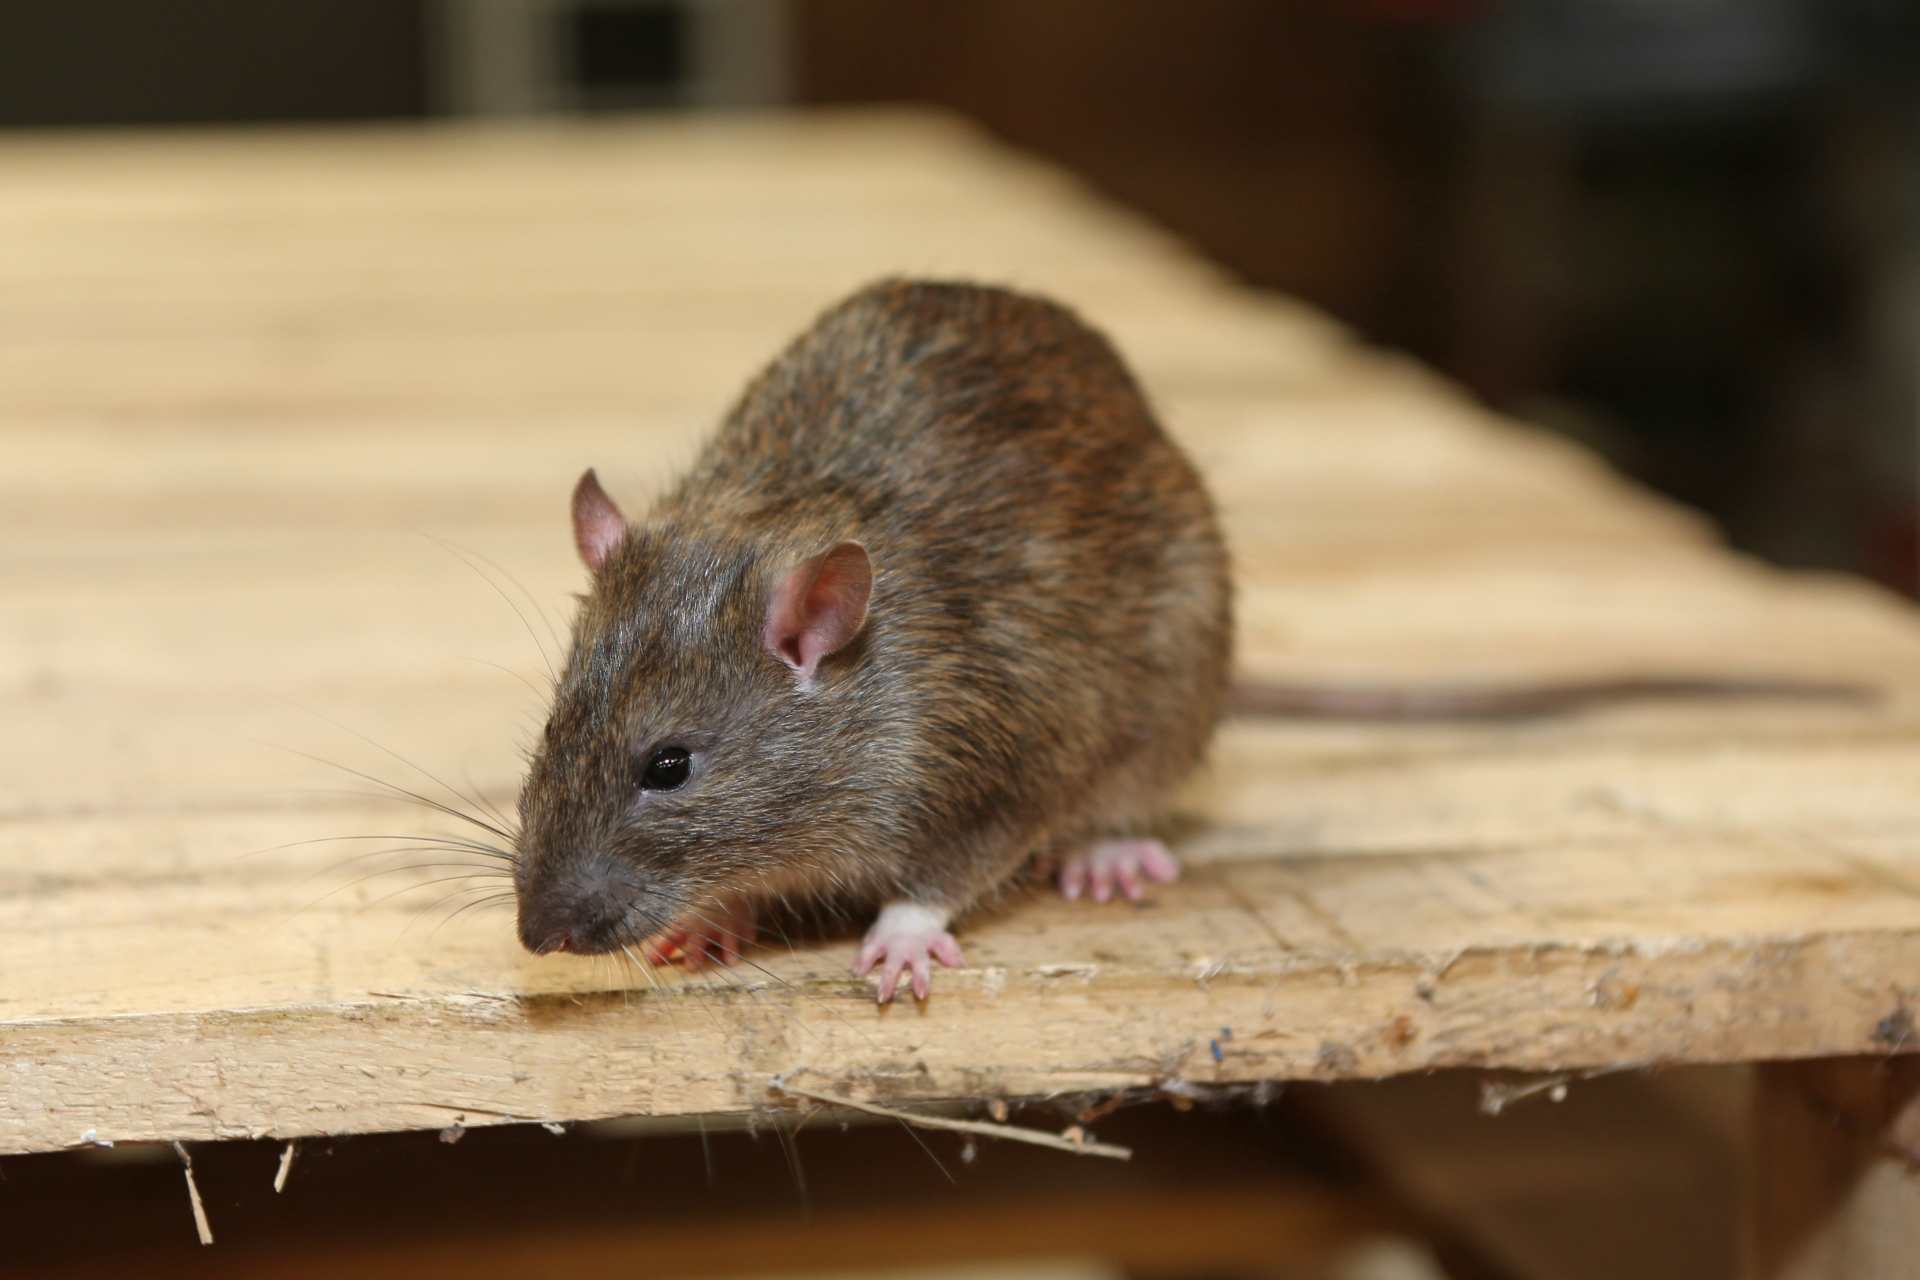 Rat Infestation, Pest Control in Moorgate, Liverpool Street, EC2. Call Now 020 8166 9746